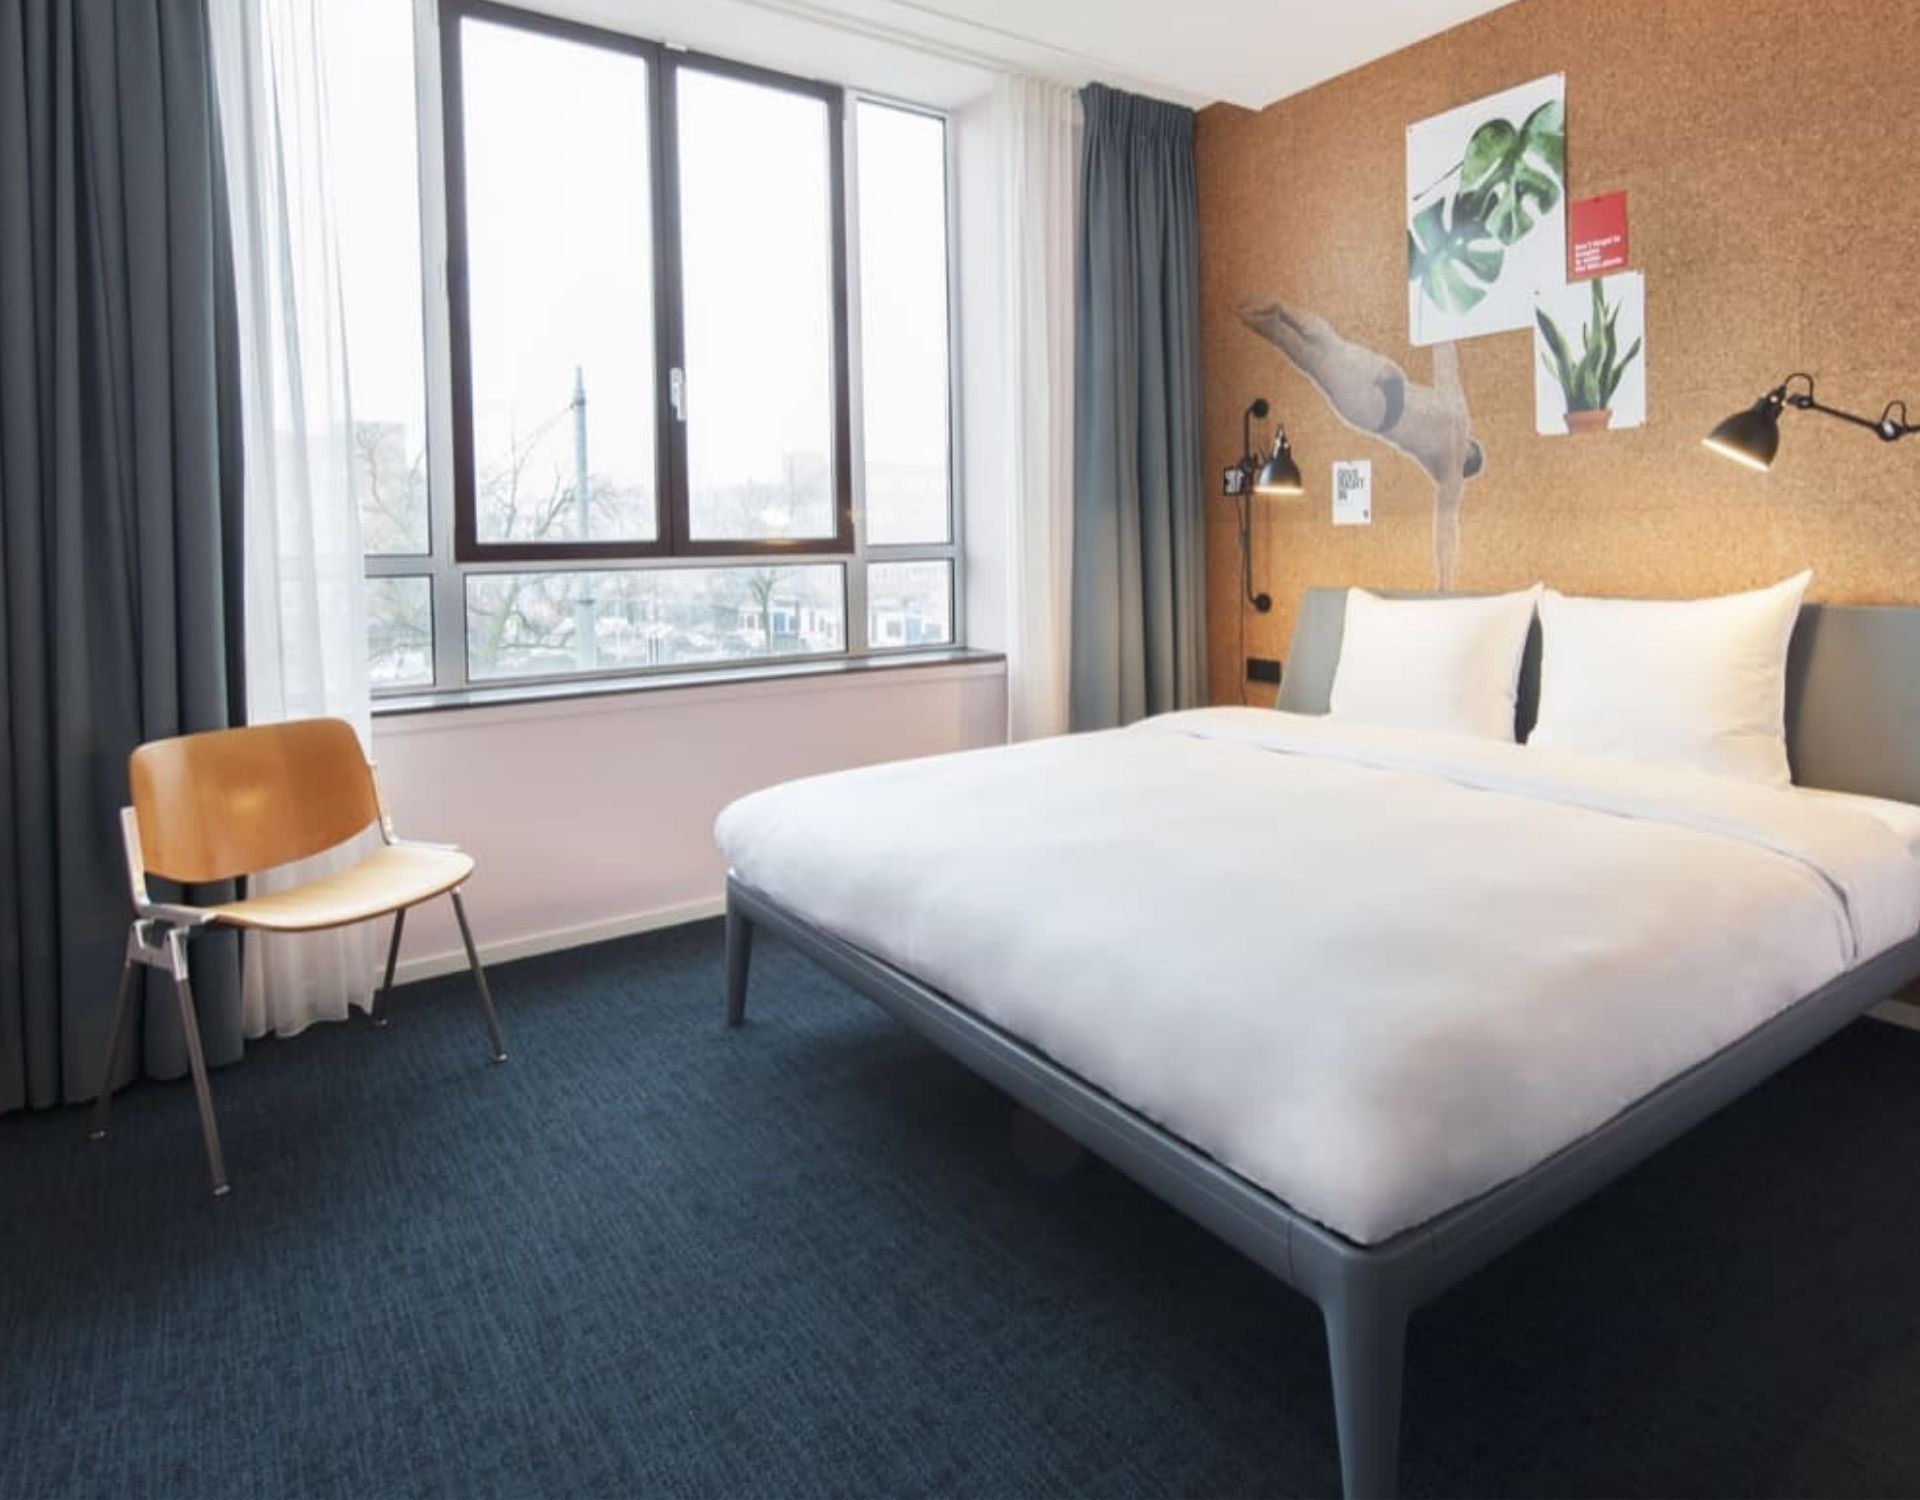 a queen-sized bed and chair with lamps in a hotel room conscious hotel amsterdam